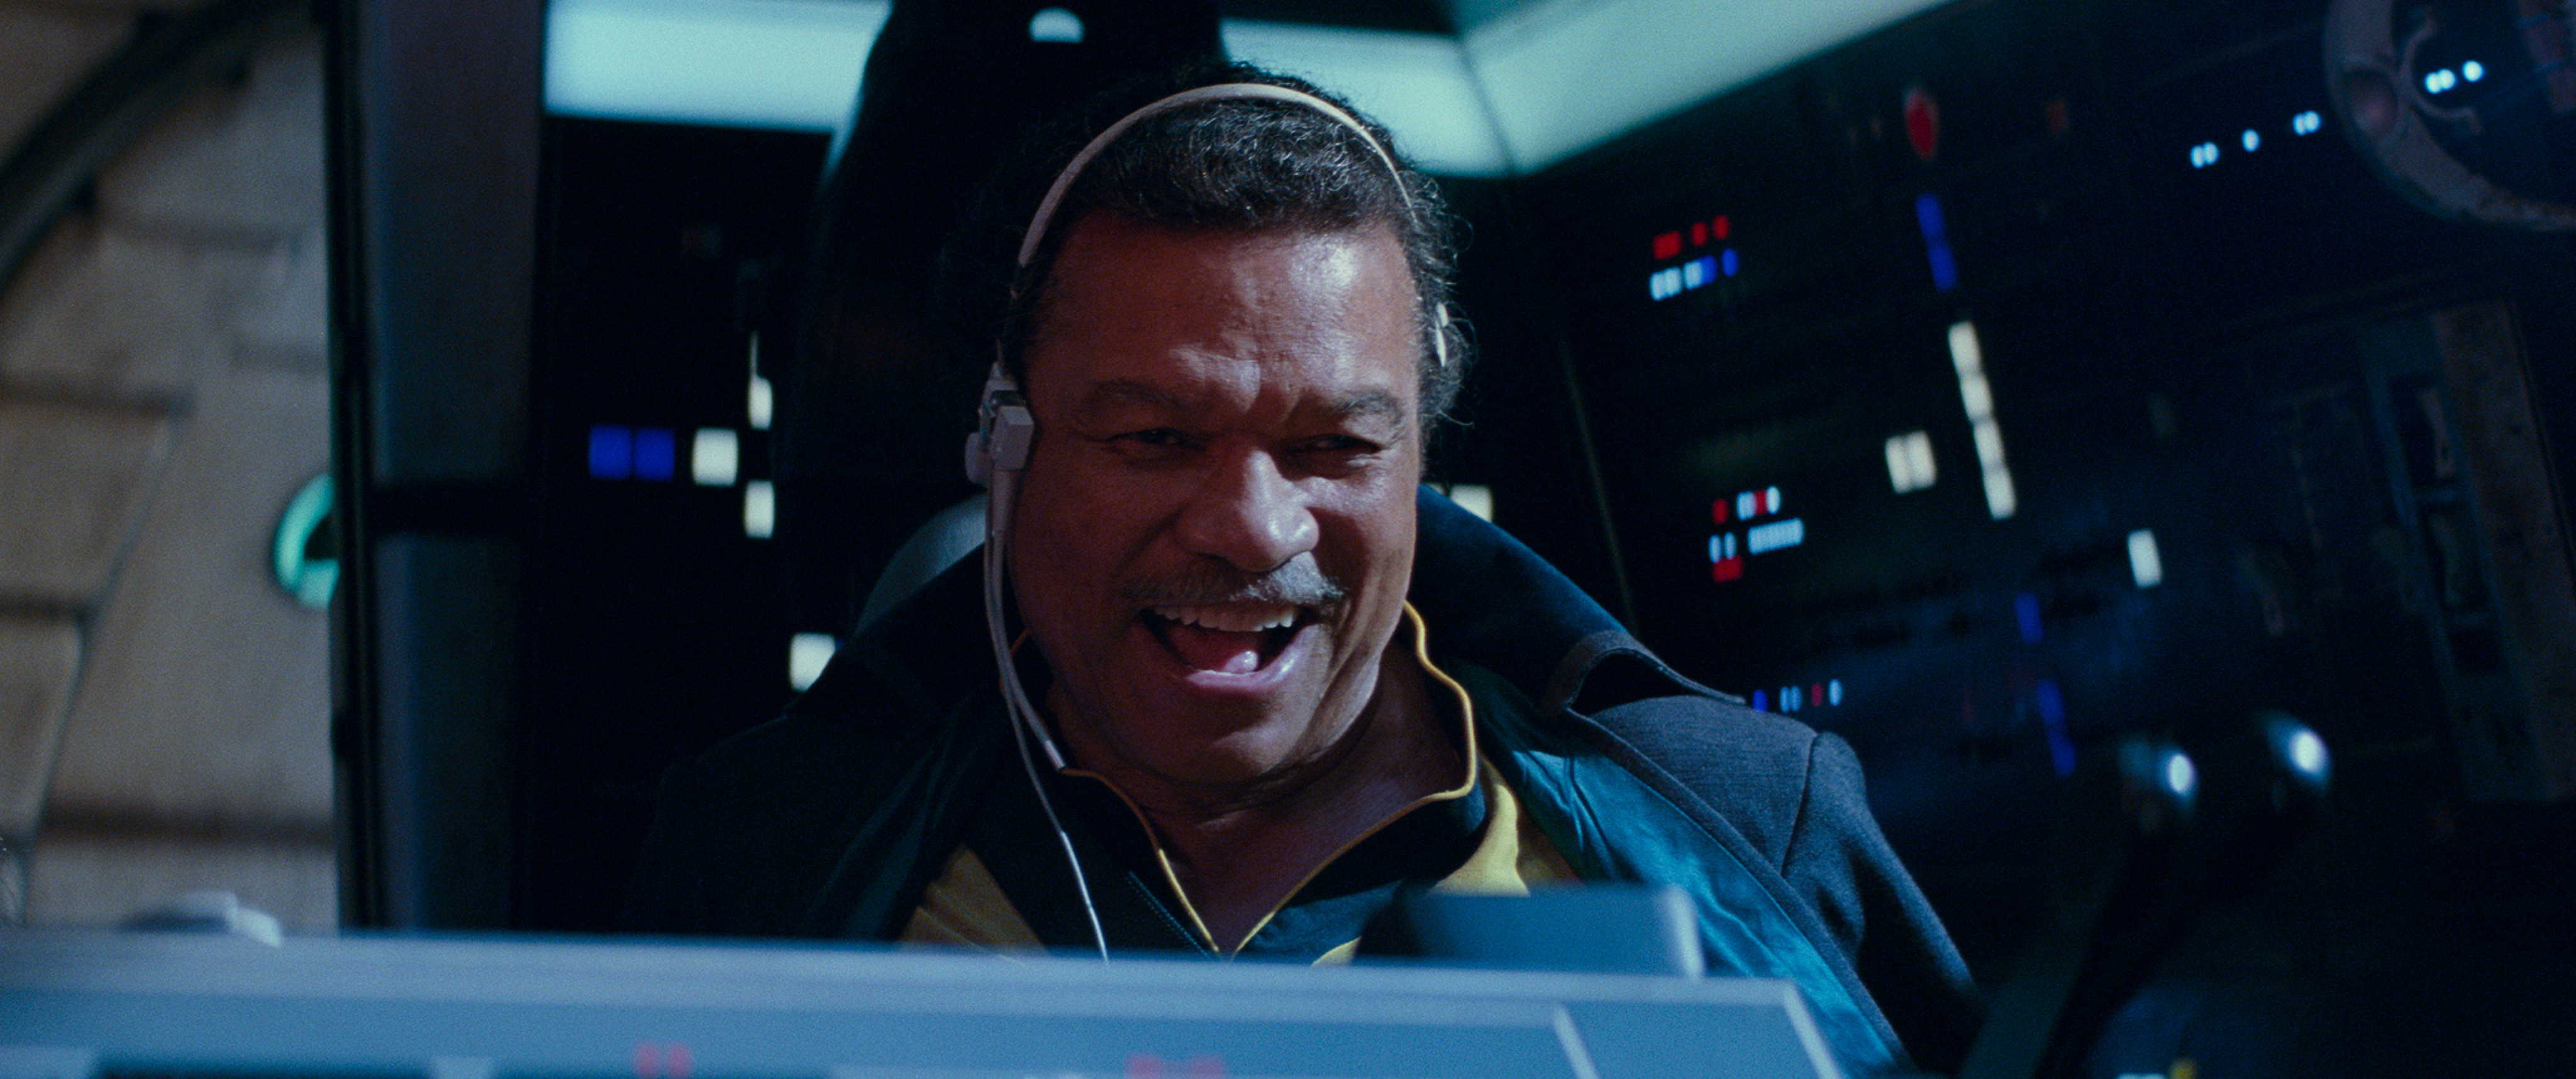 Lando Calrissian, interpetado por Billy Dee Williams. / Foto: Lucasfilm